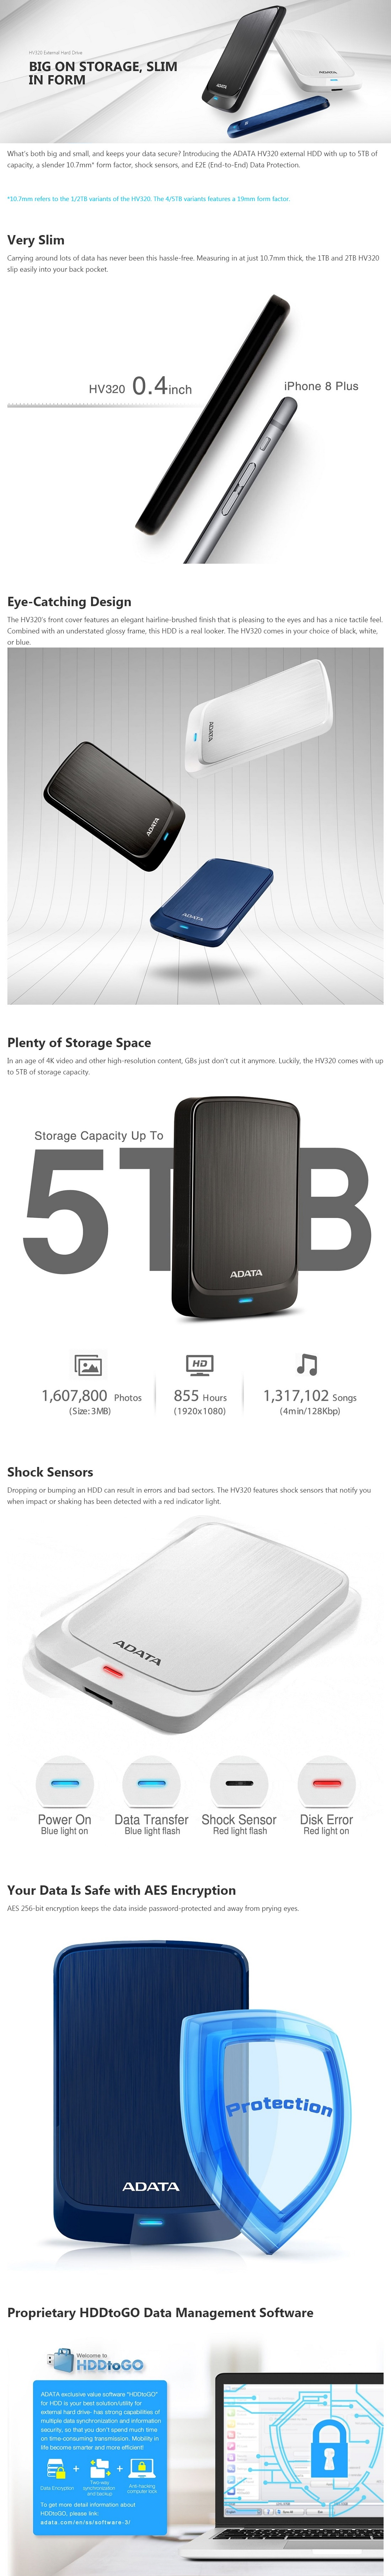 Adata HV320 1TB Slim External Hard Drive HDD Shock Protection USB 3.2 Gen1 Black